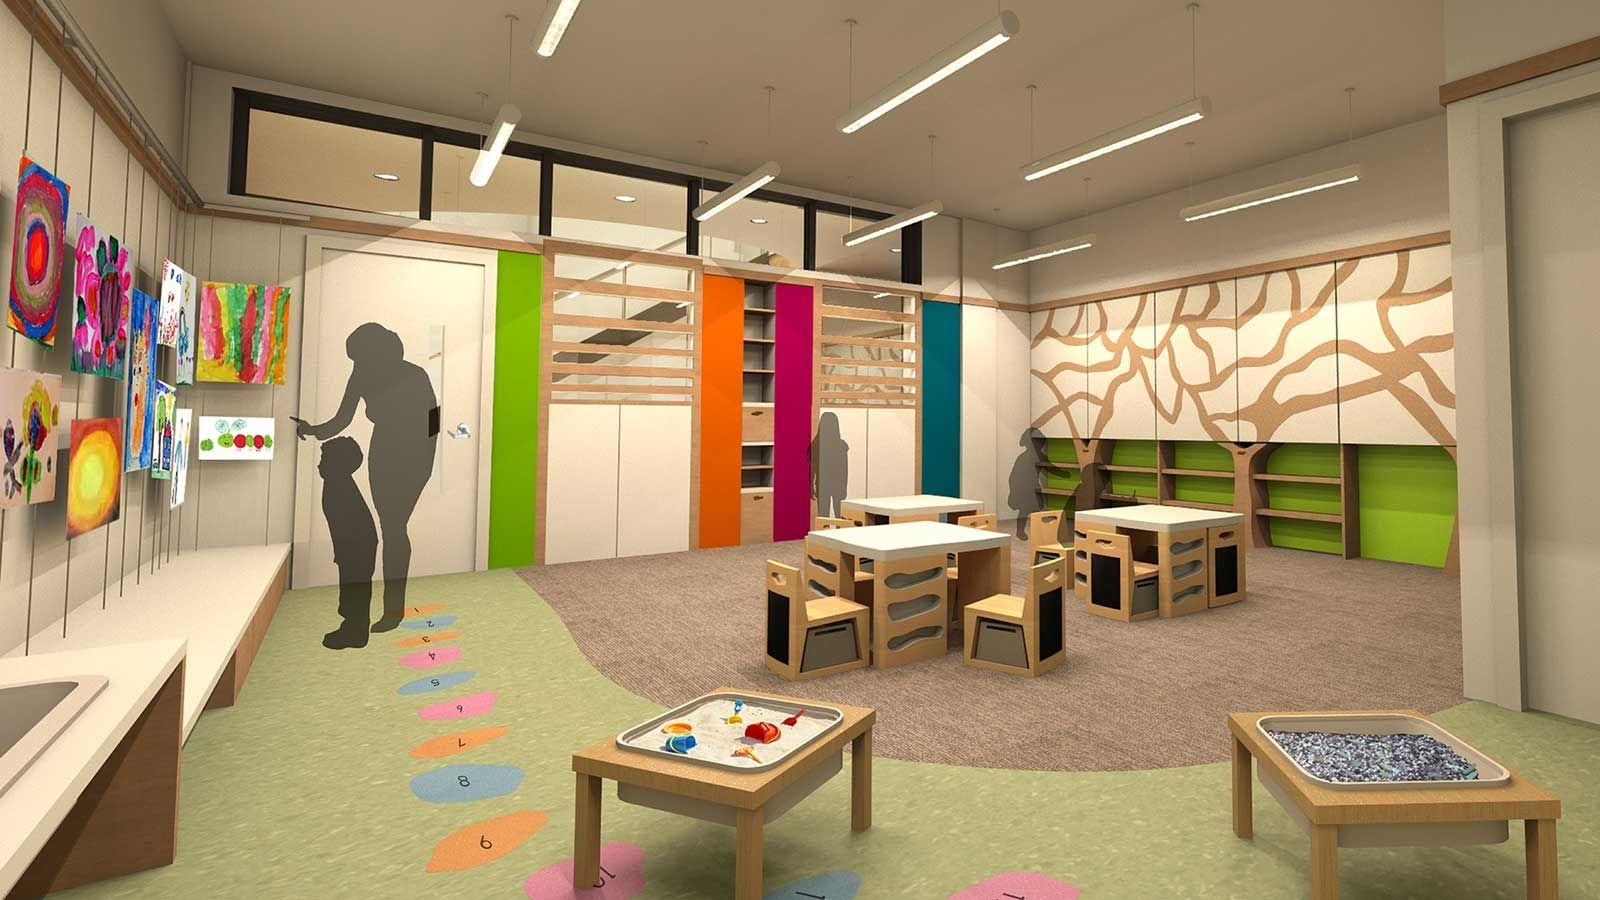 Modern Interior Kids Classroom School Design With Minimalist Wooden  Furniture Classroom Design Idea And Colorful Wall Decorating Kids Classroom  Design